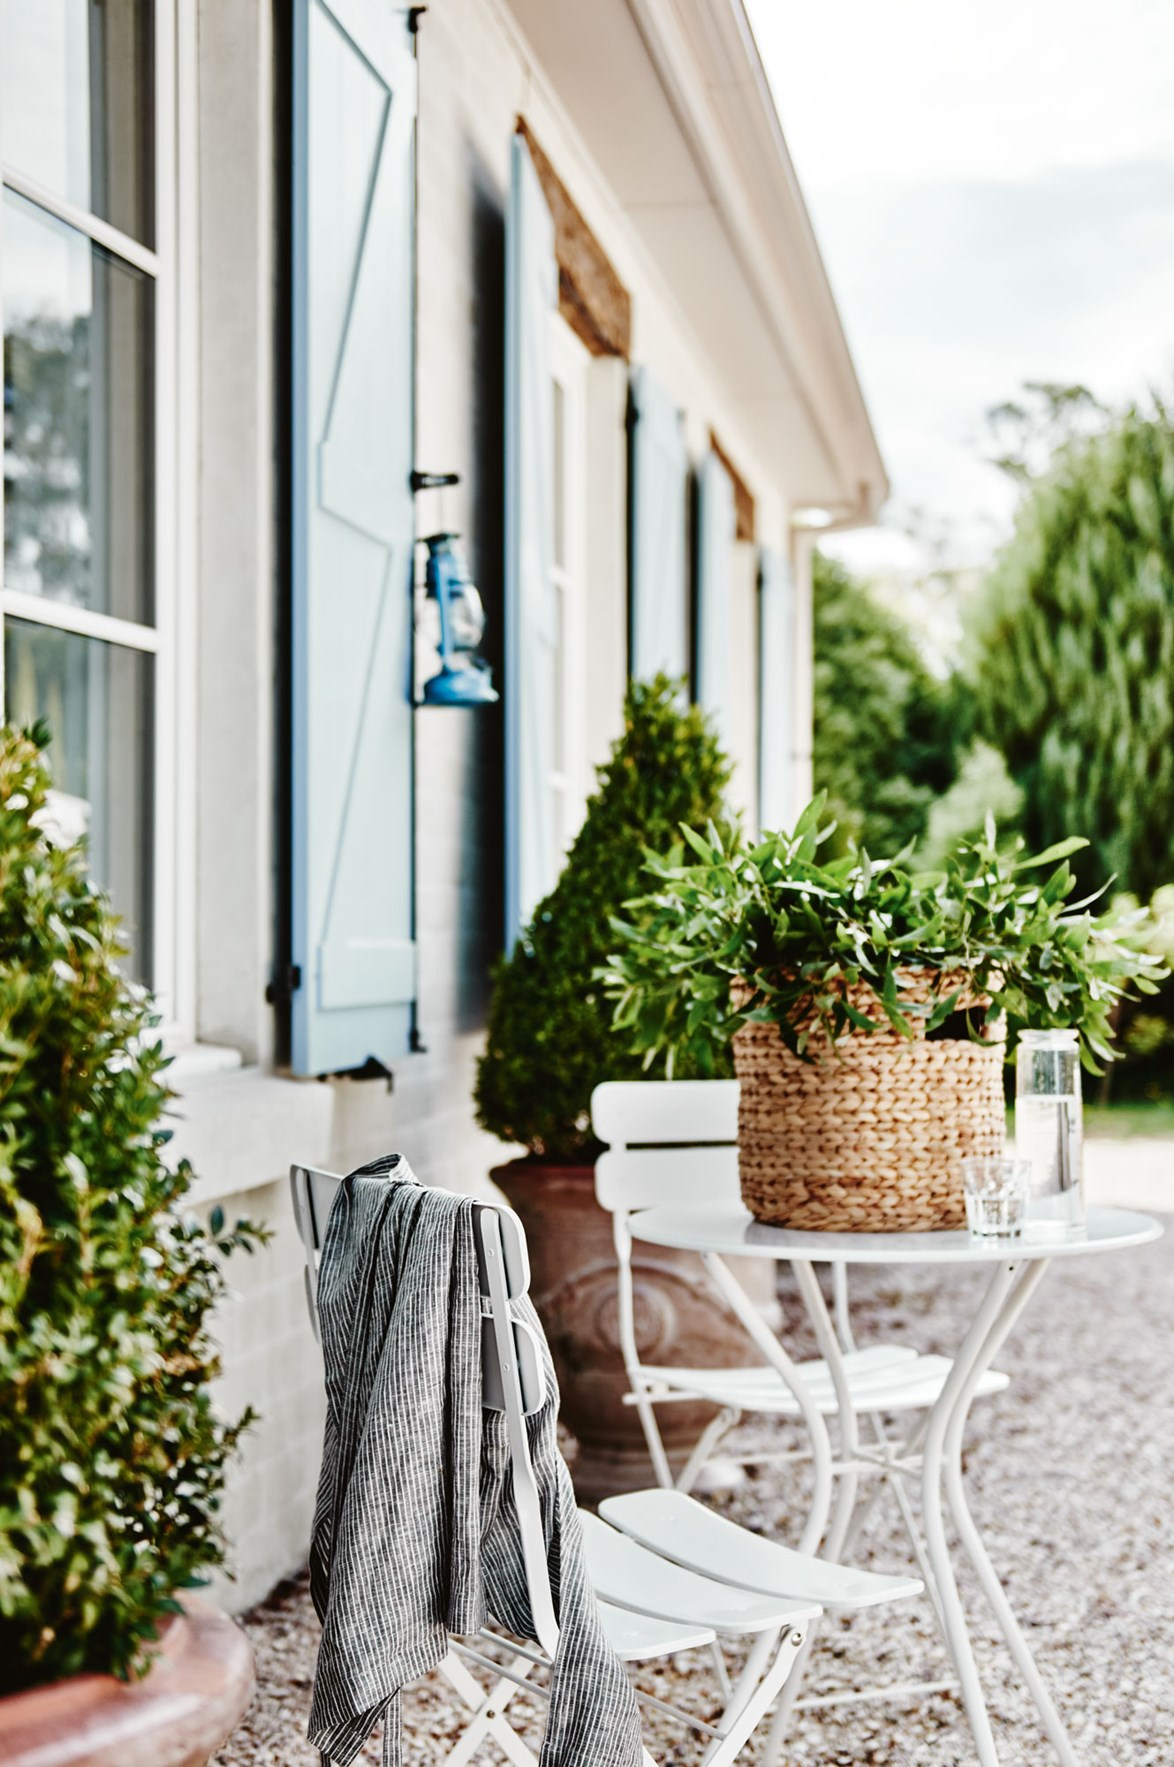 The outdoor dining setting is the perfect place to enjoy afternoon tea.